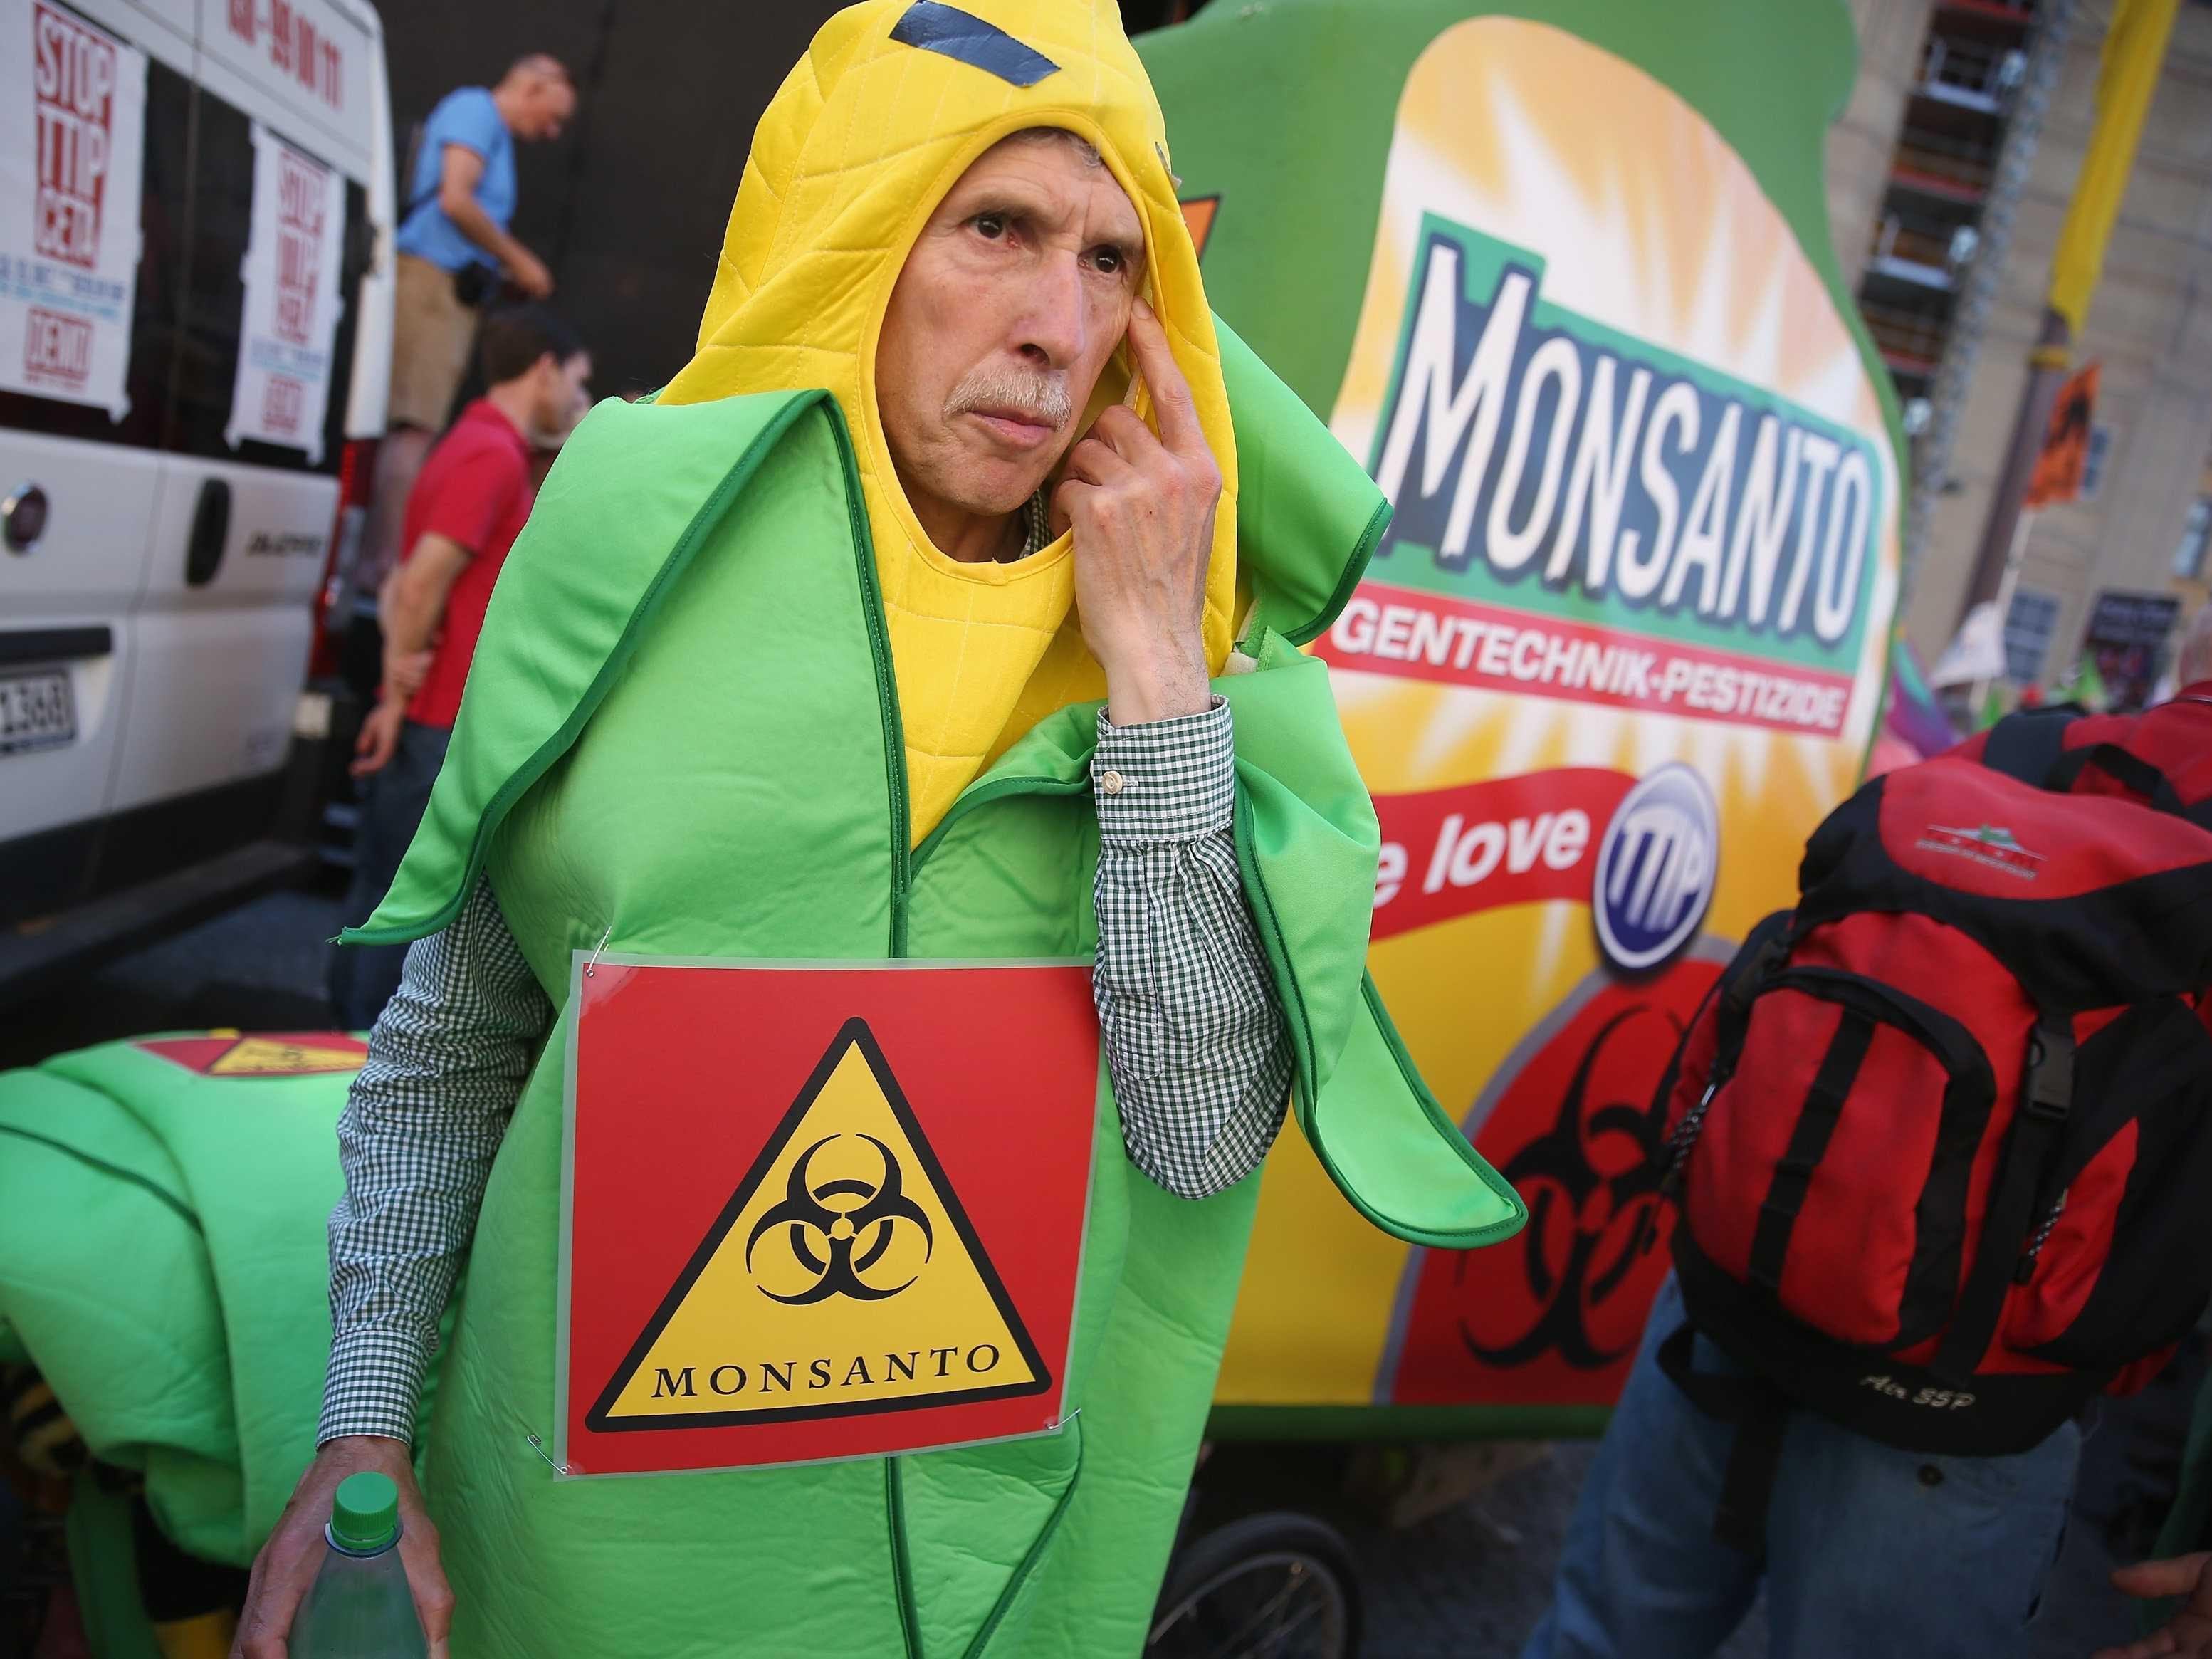 Monsanto, Valeant and Goldman Sachs: WHAT YOU NEED TO KNOW ON WALL STREET